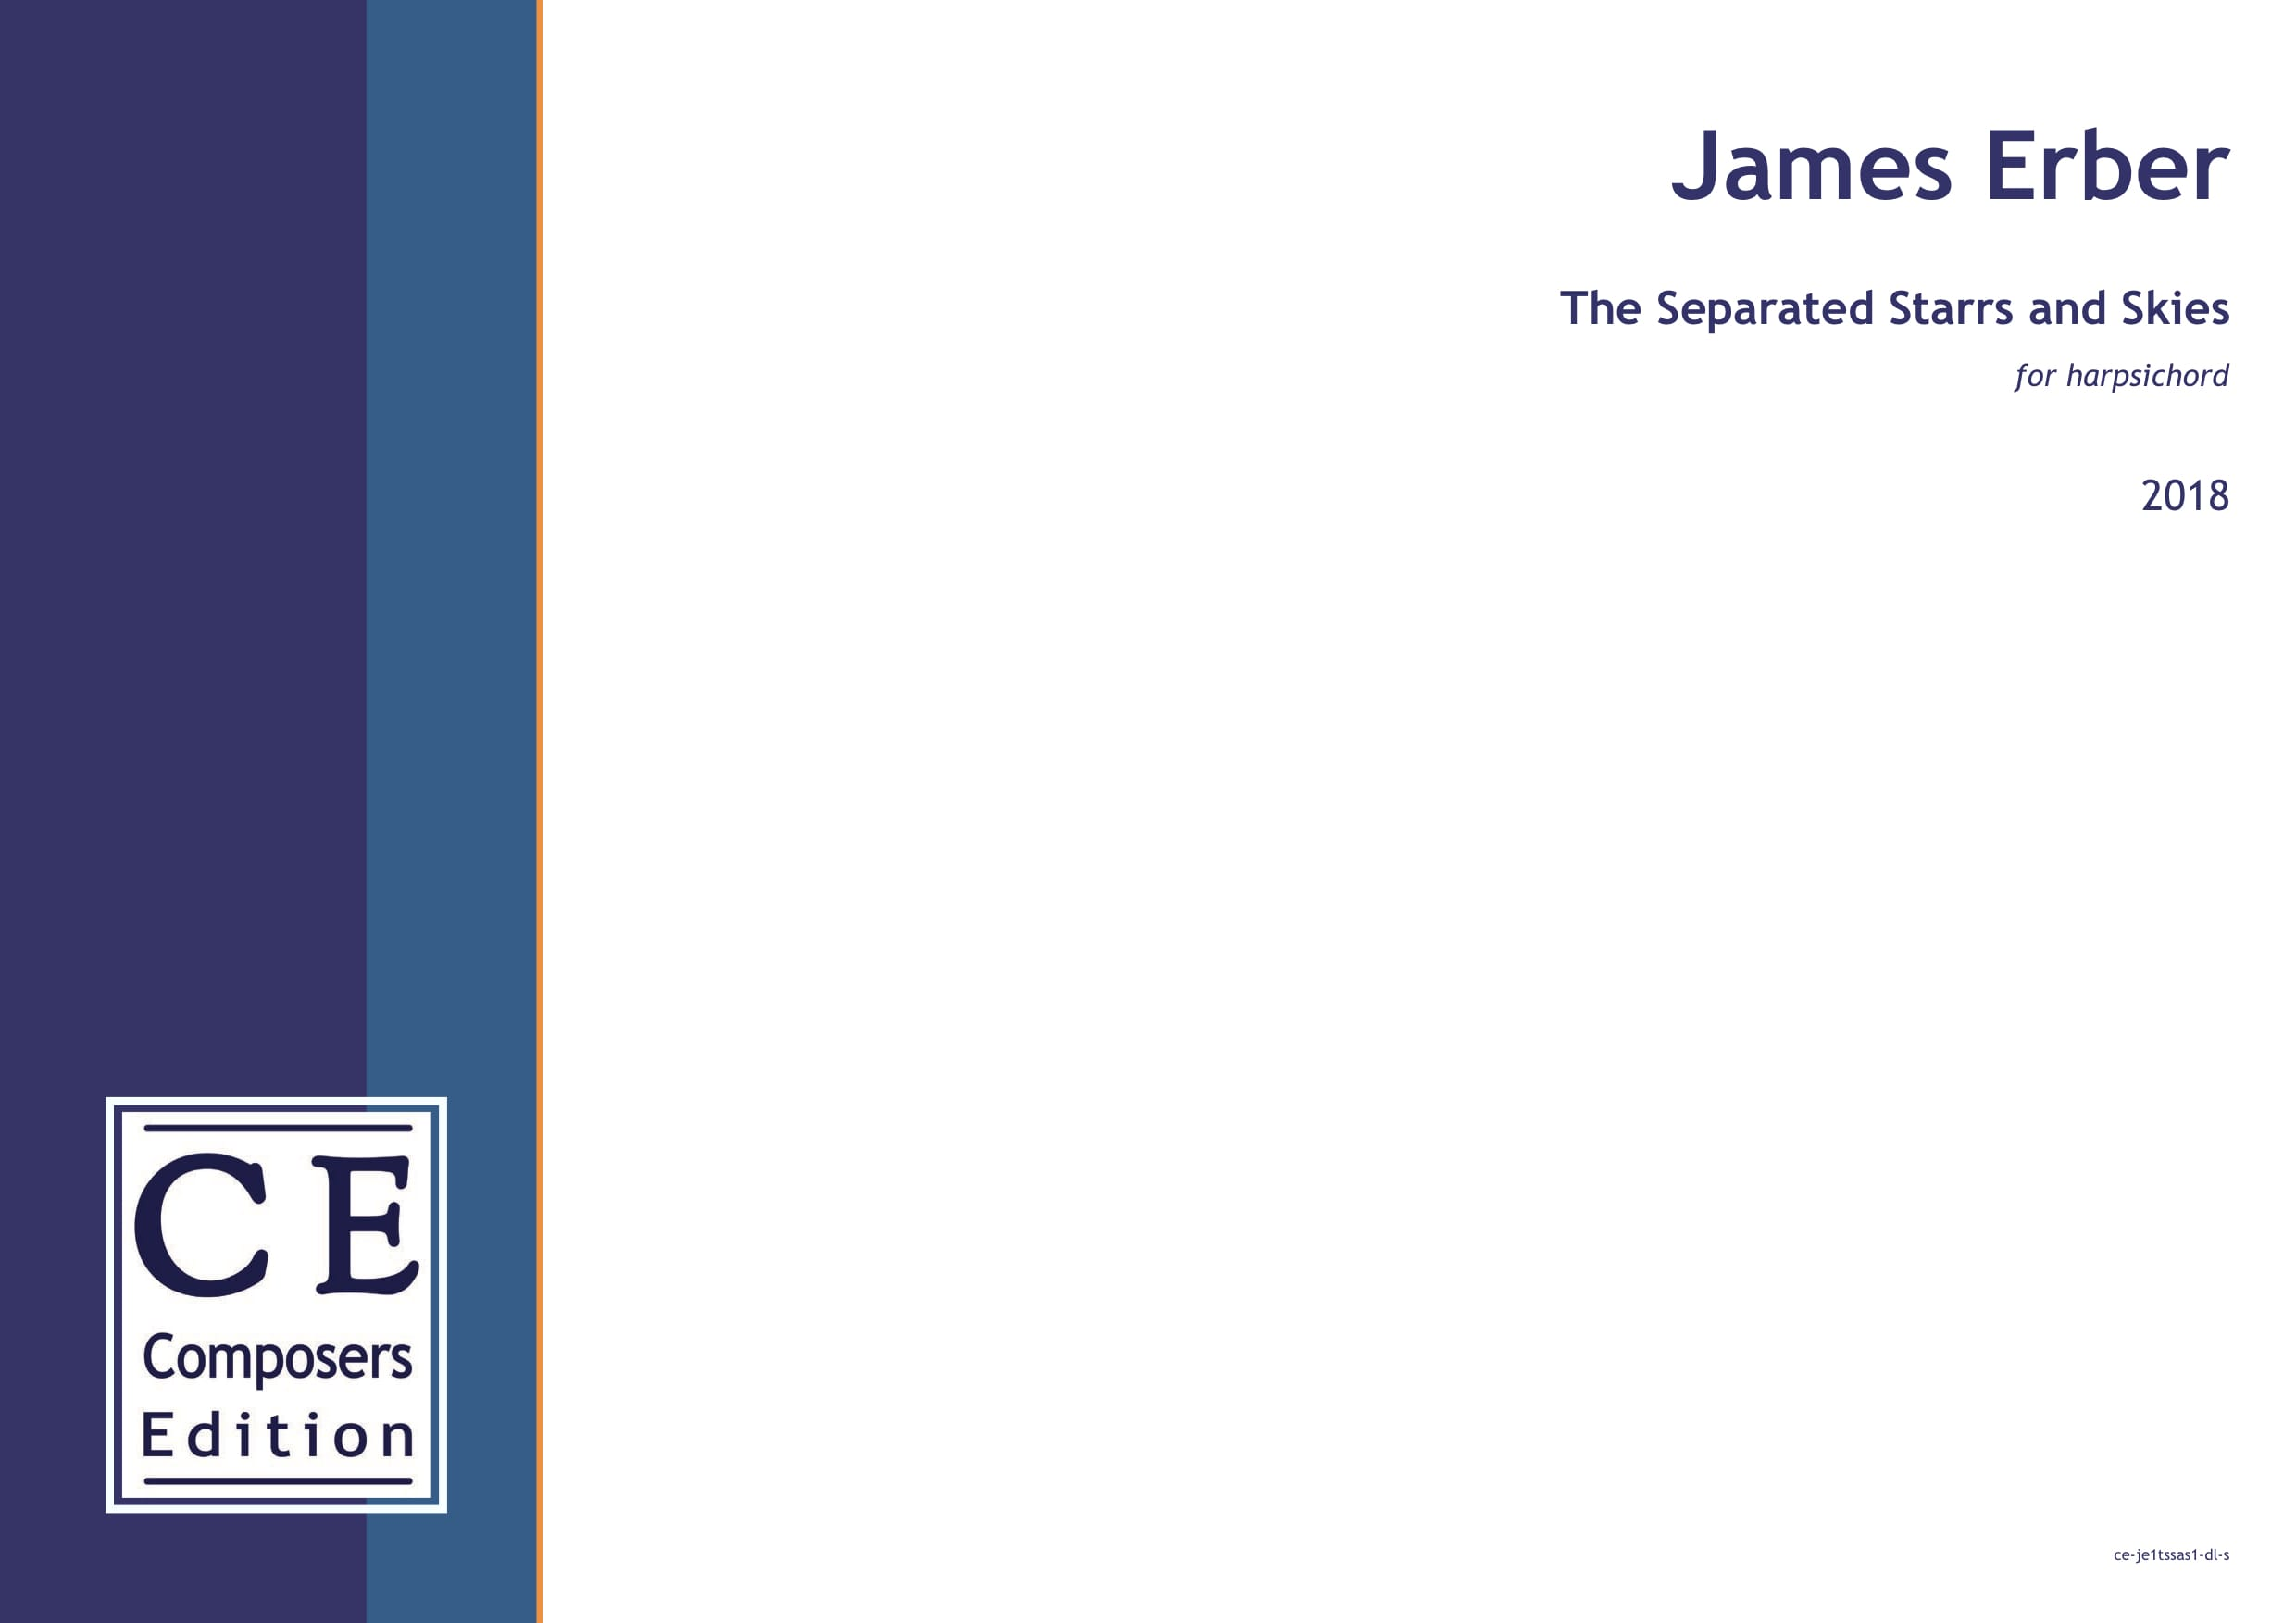 James Erber: The Separated Starrs and Skies for harpsichord